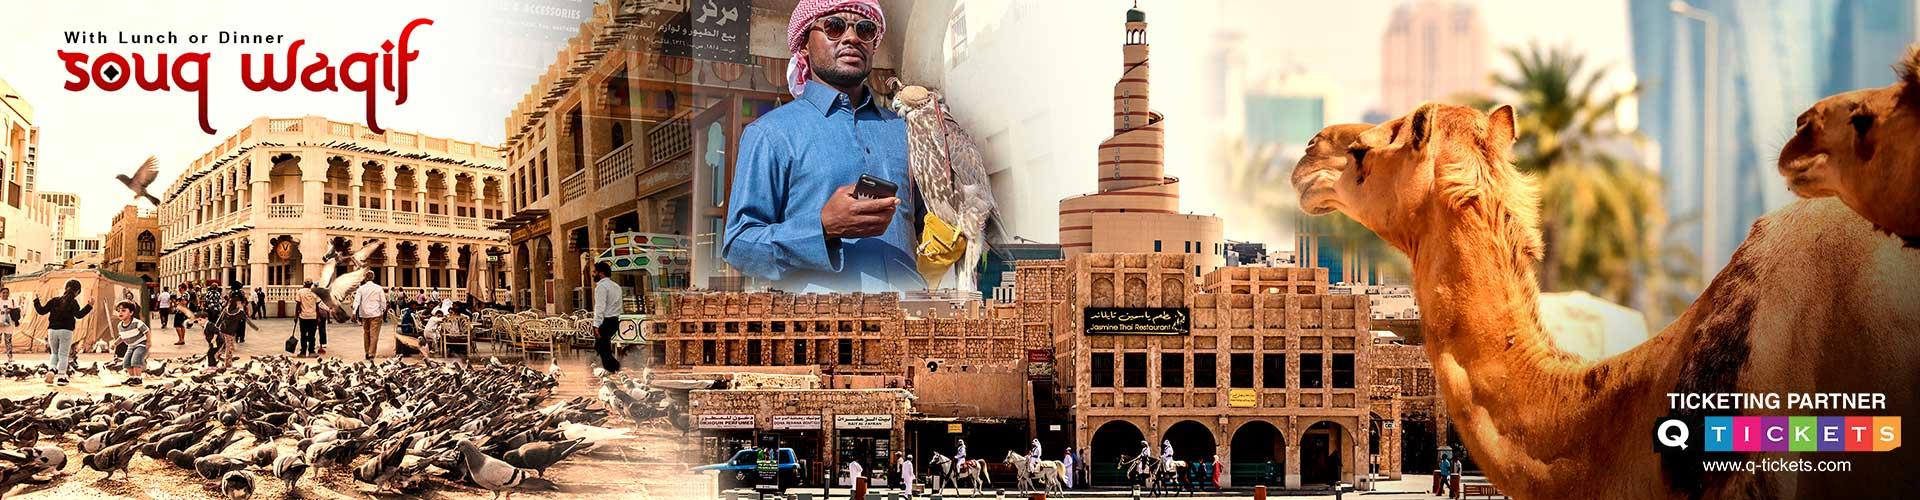 Souq Waqif Tour with Lunch or Dinner Tickets Online In Qatar | Q